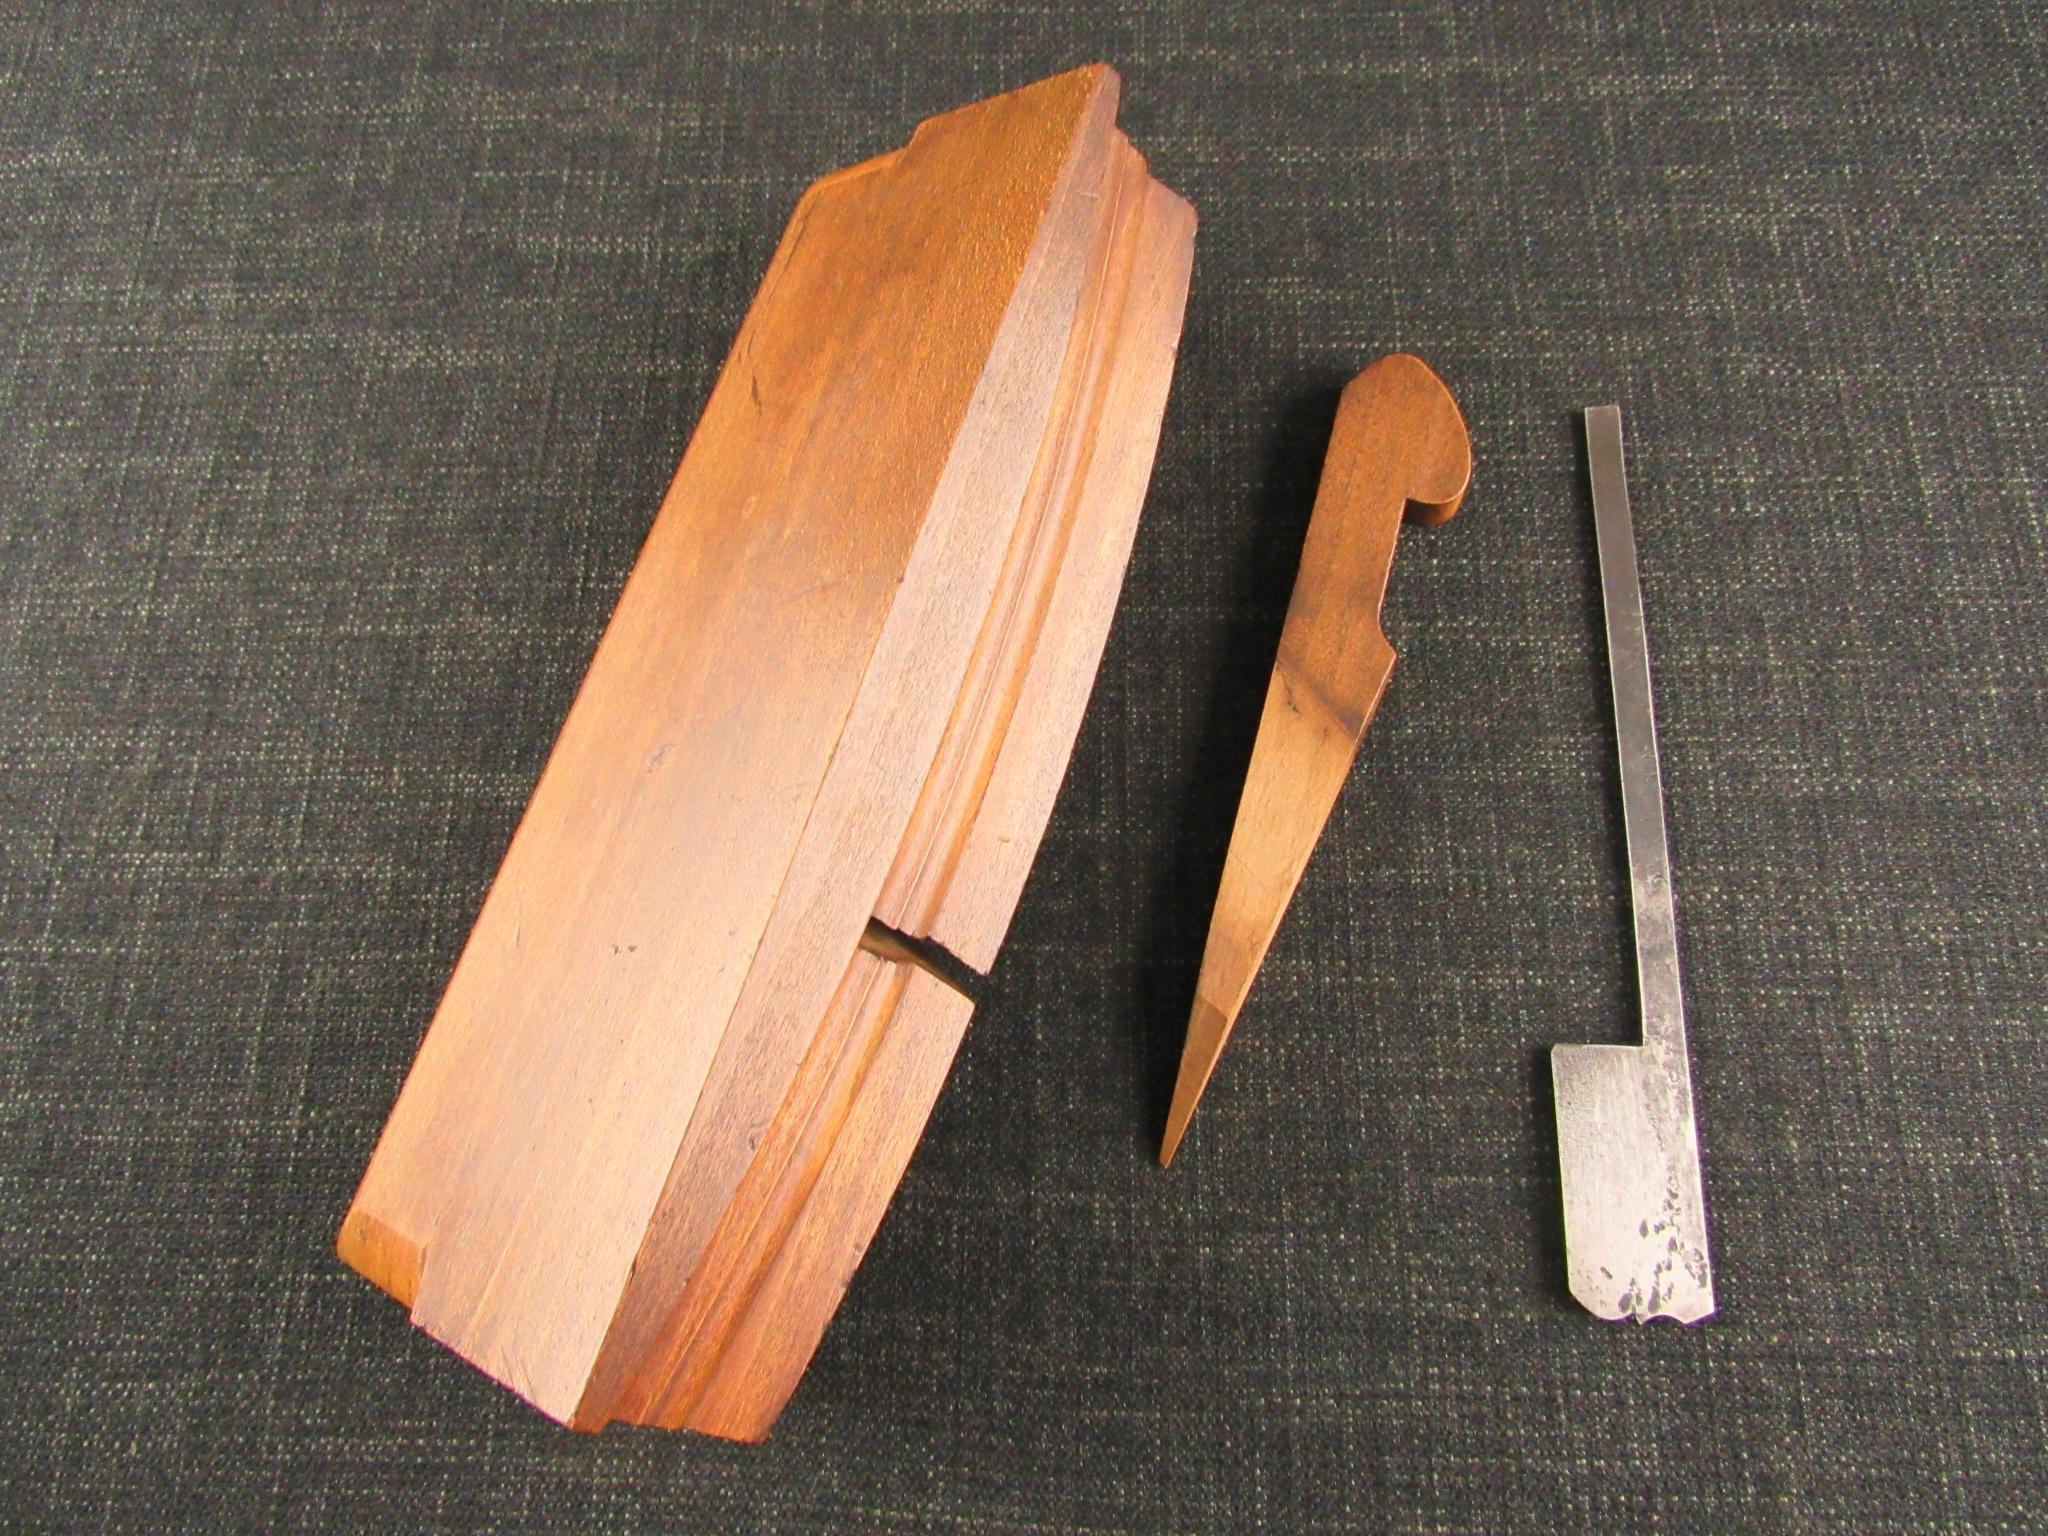 Rare JOHN GREEN Curved Moulding Plane - Sash Window Plane